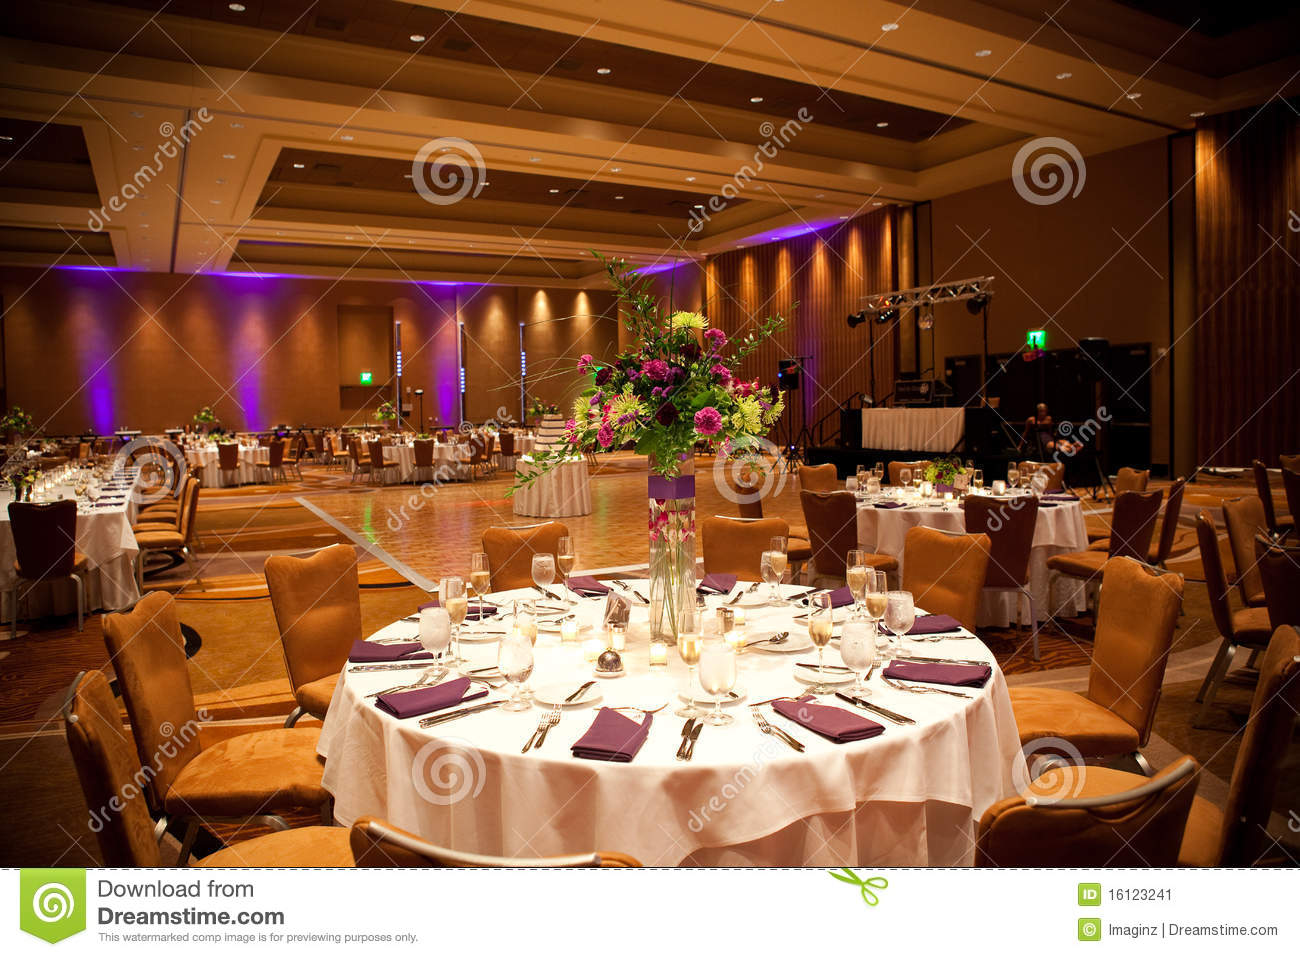 Indoor Wedding Venue Royalty Free Stock Photo: Tables At Wedding Reception Stock Image